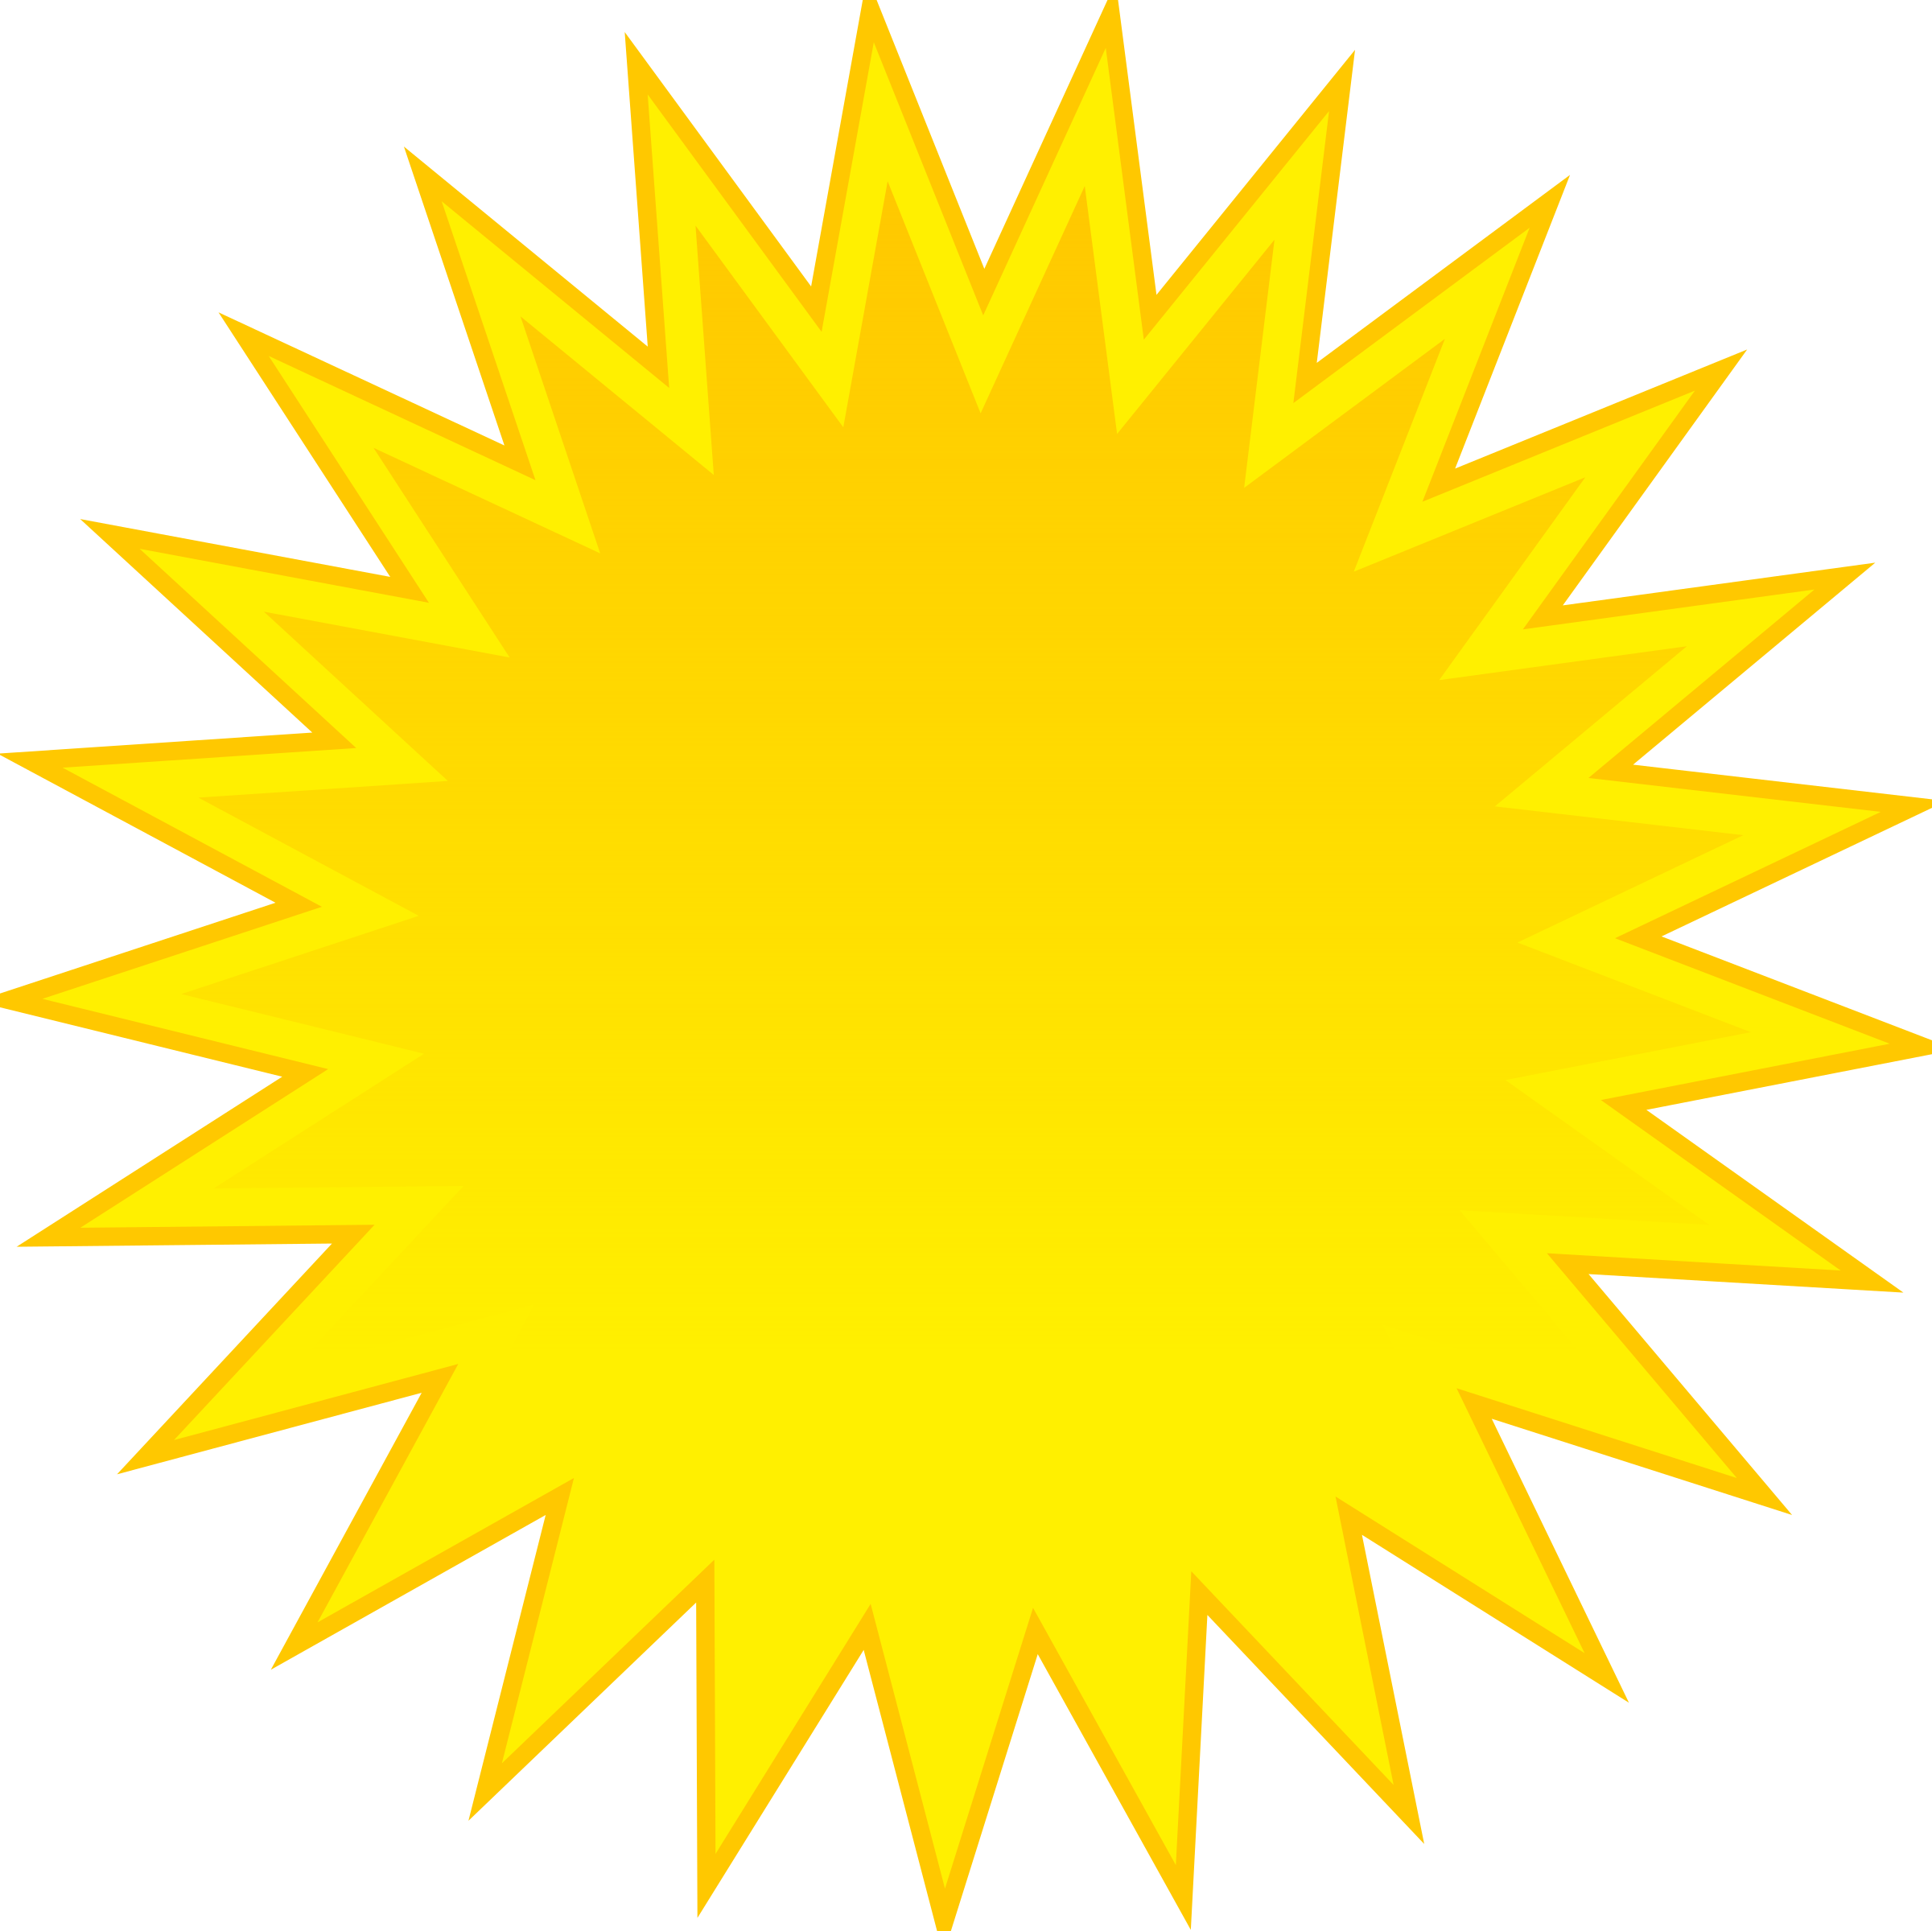 Sunflower sun clipart svg freeuse library Clipart - sun svg freeuse library